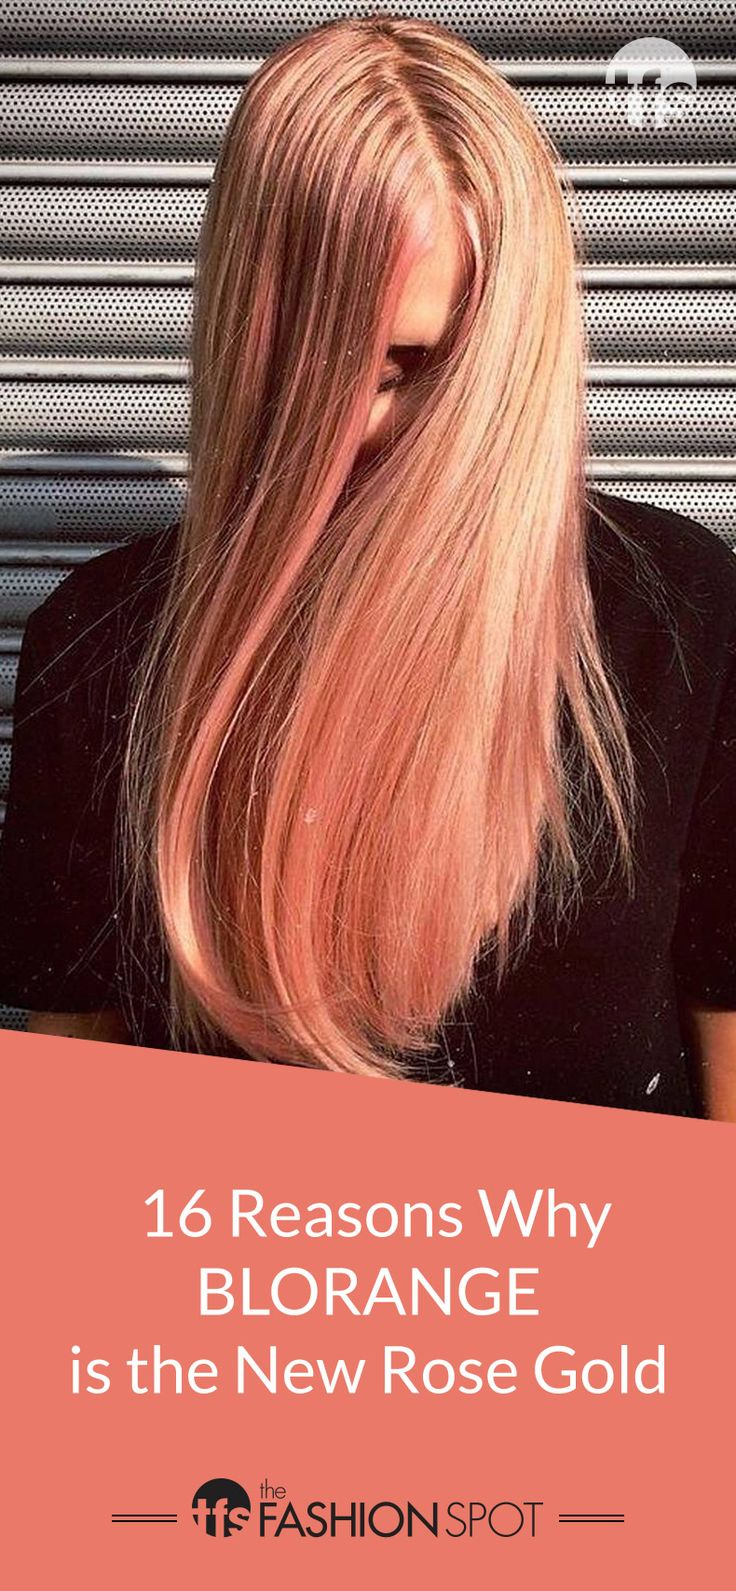 16 Reasons Blorange Hair Color Trend Is the New Rose Gold